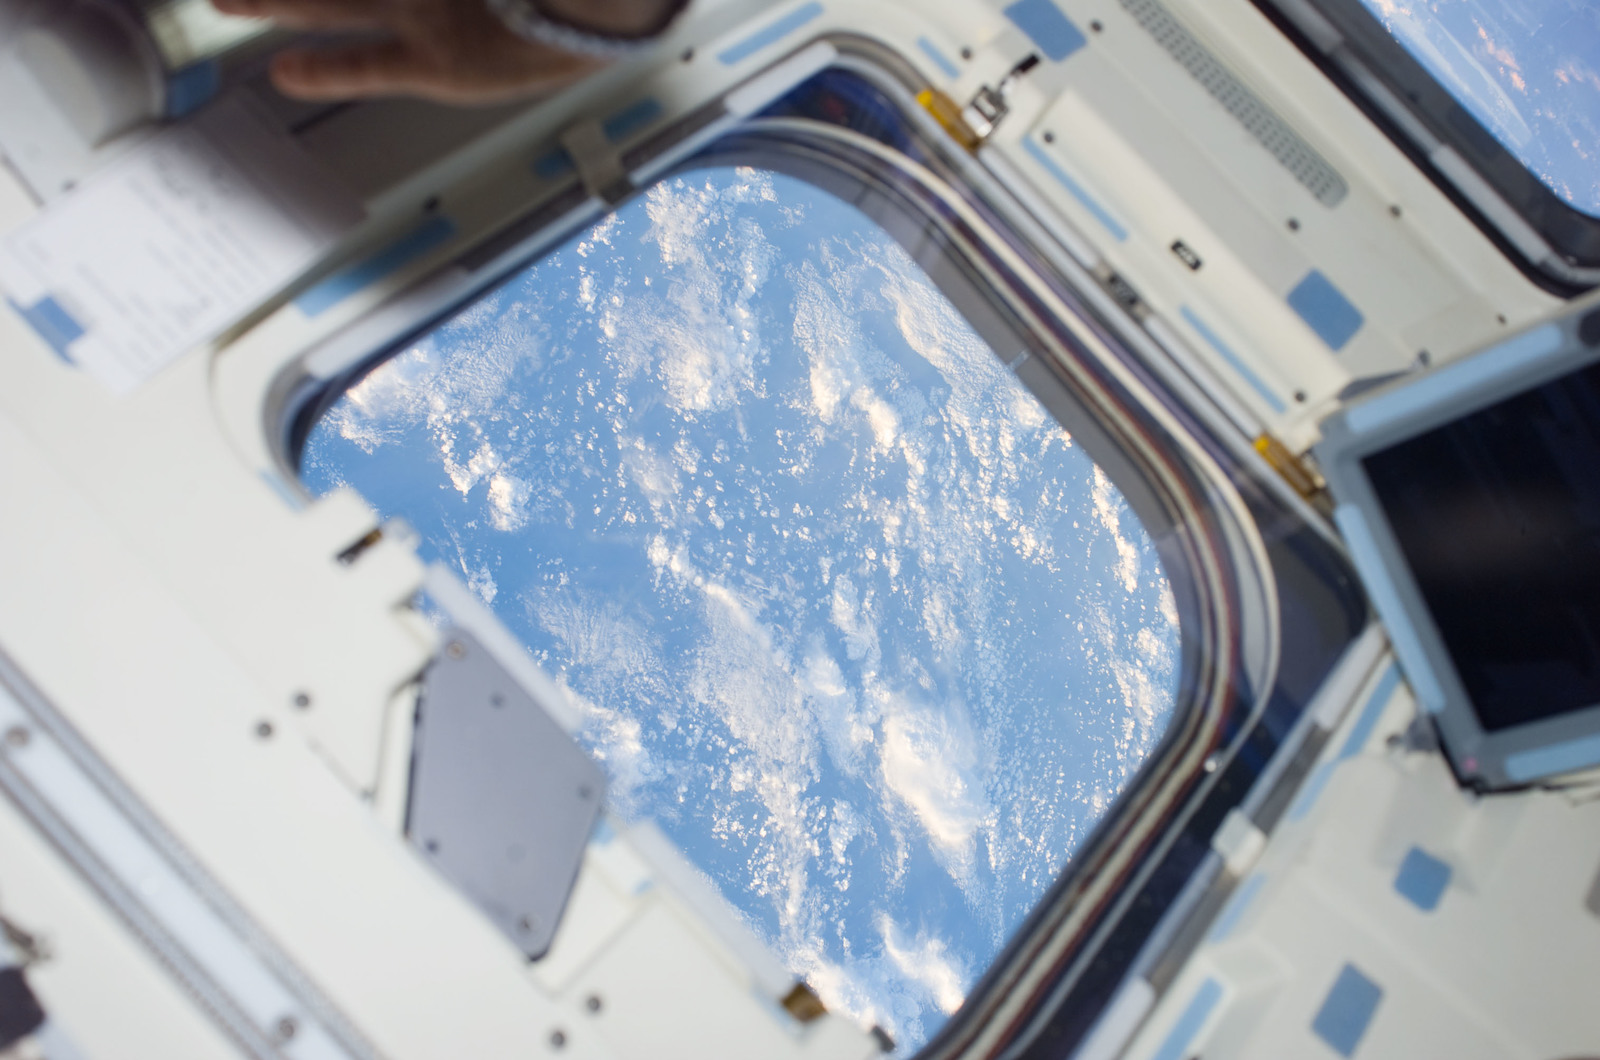 S123E005077 - STS-123 - Cloud coverage from the aft FD window during STS-123 mission